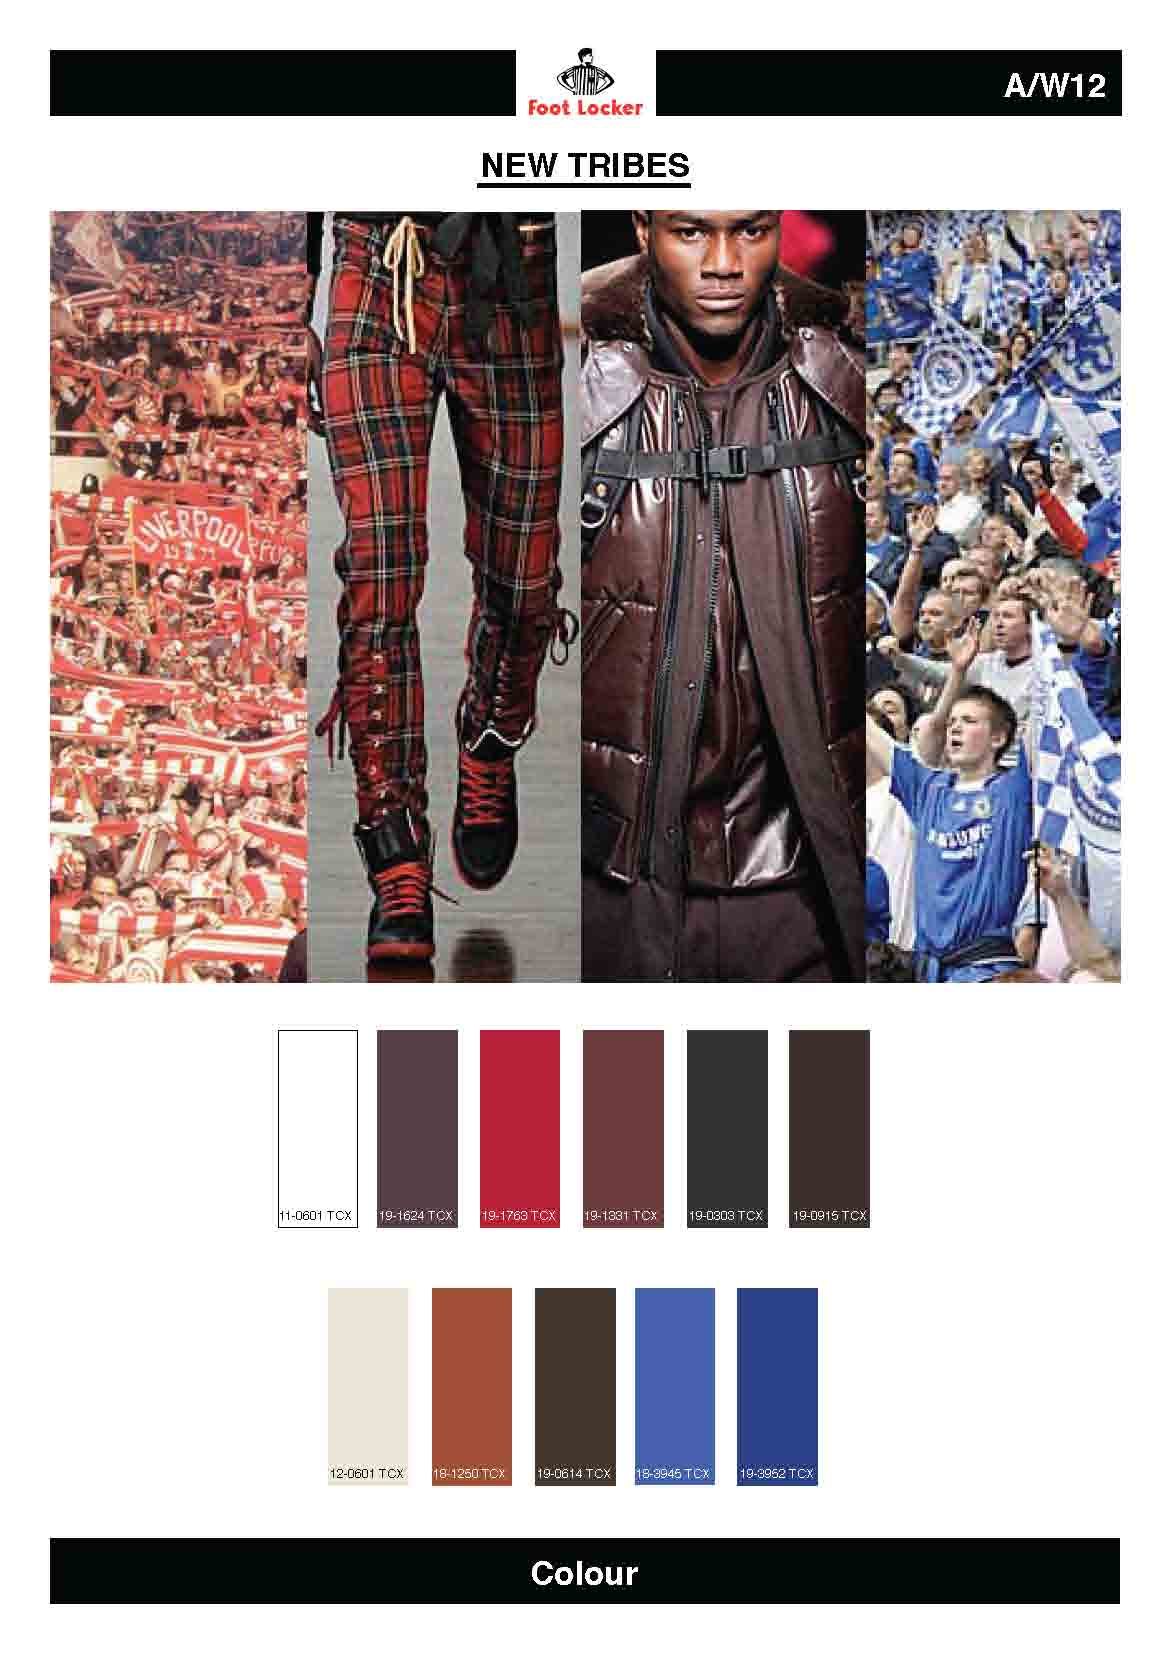 Pages from Footlocker Presentation AW12 Lowres_Page_3.jpg